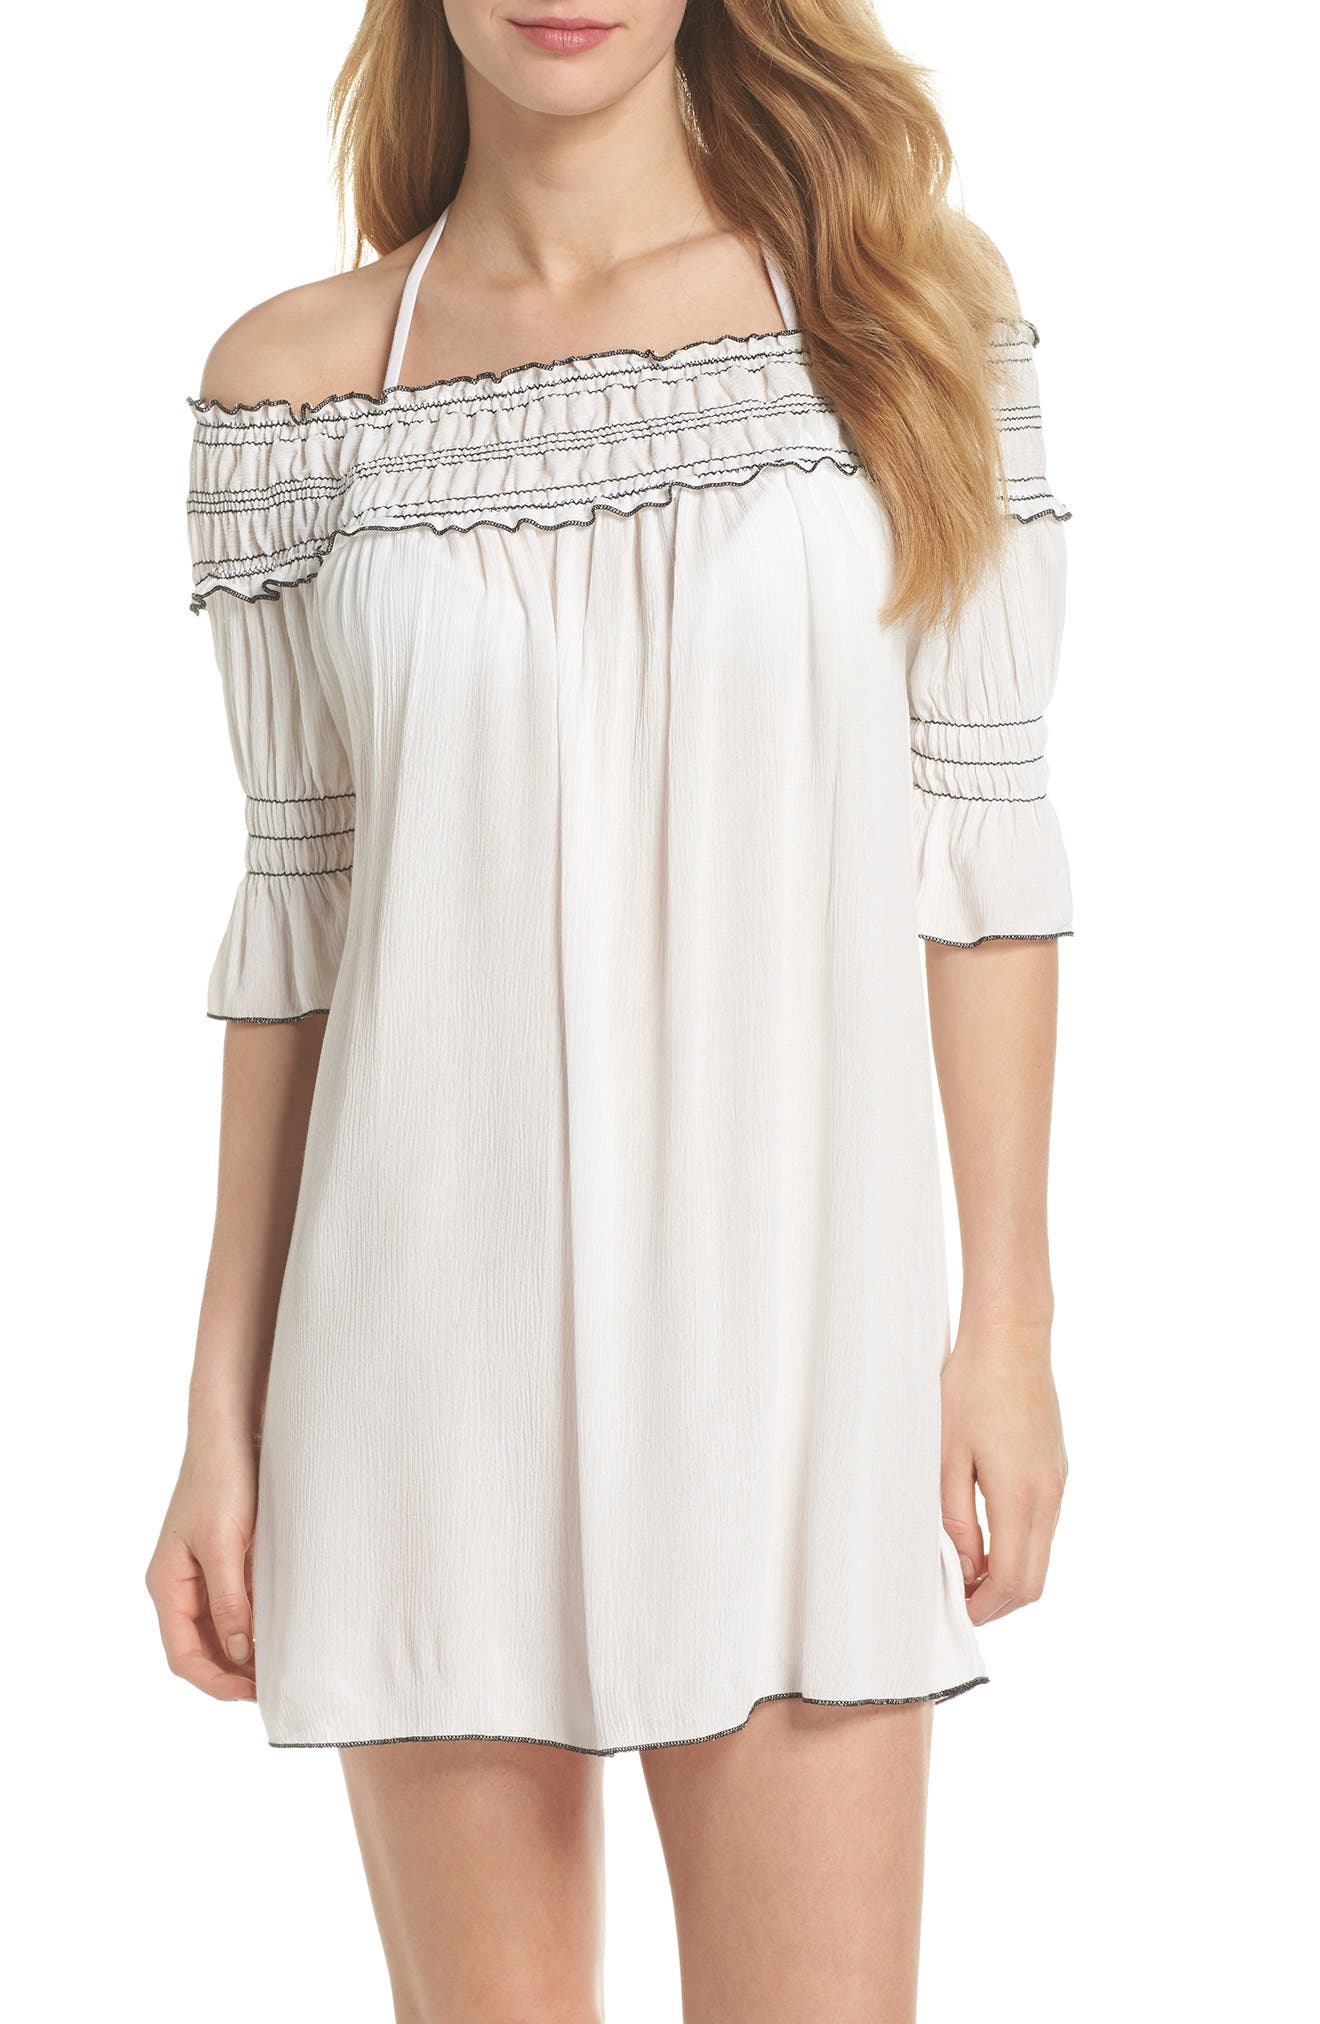 Nightingale Off the Shoulder Cover-Up Dress,                         Main,                         color, White